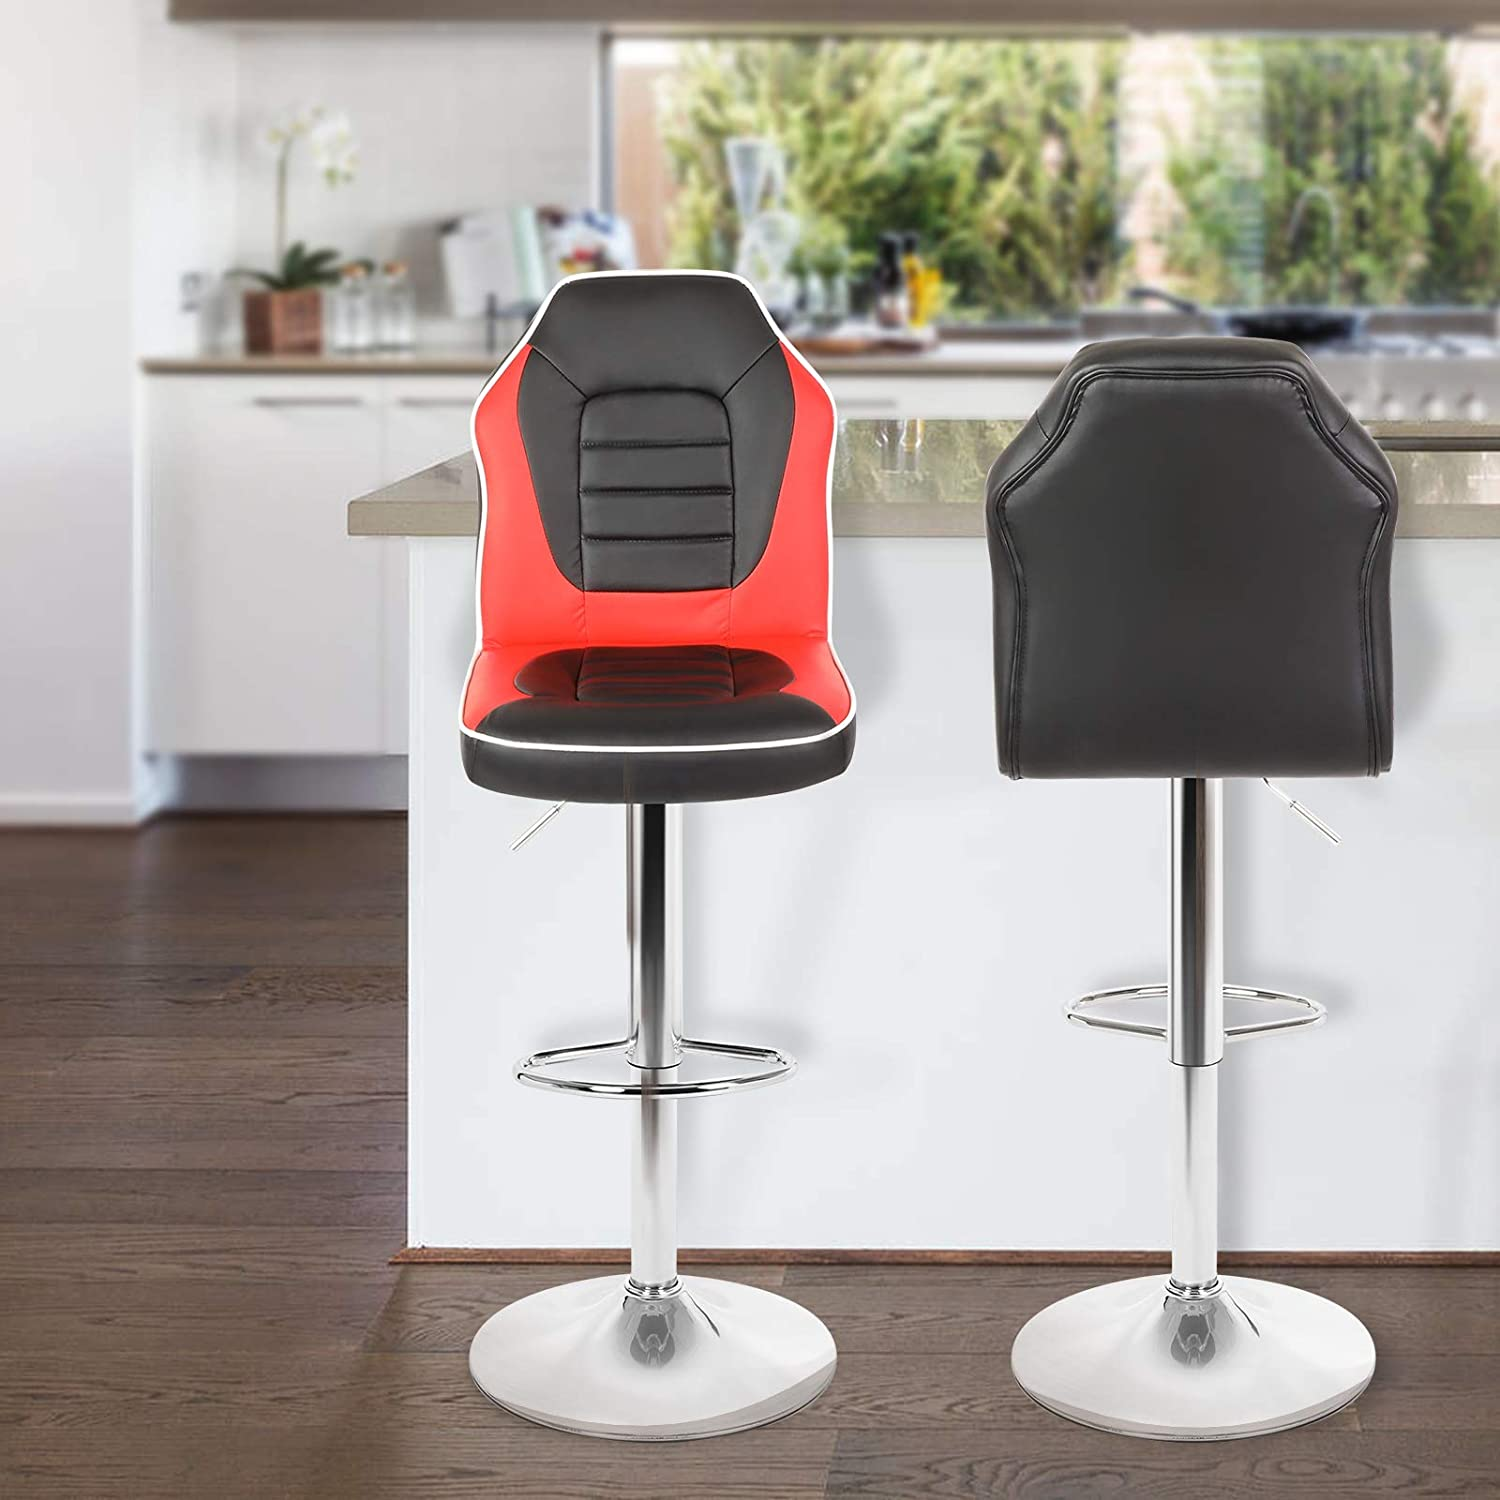 Magshion Extra Comfort Modern Racing Seat Bar Stools Chair Adjustable Swivel Mixed Color Set of 2 Black Red